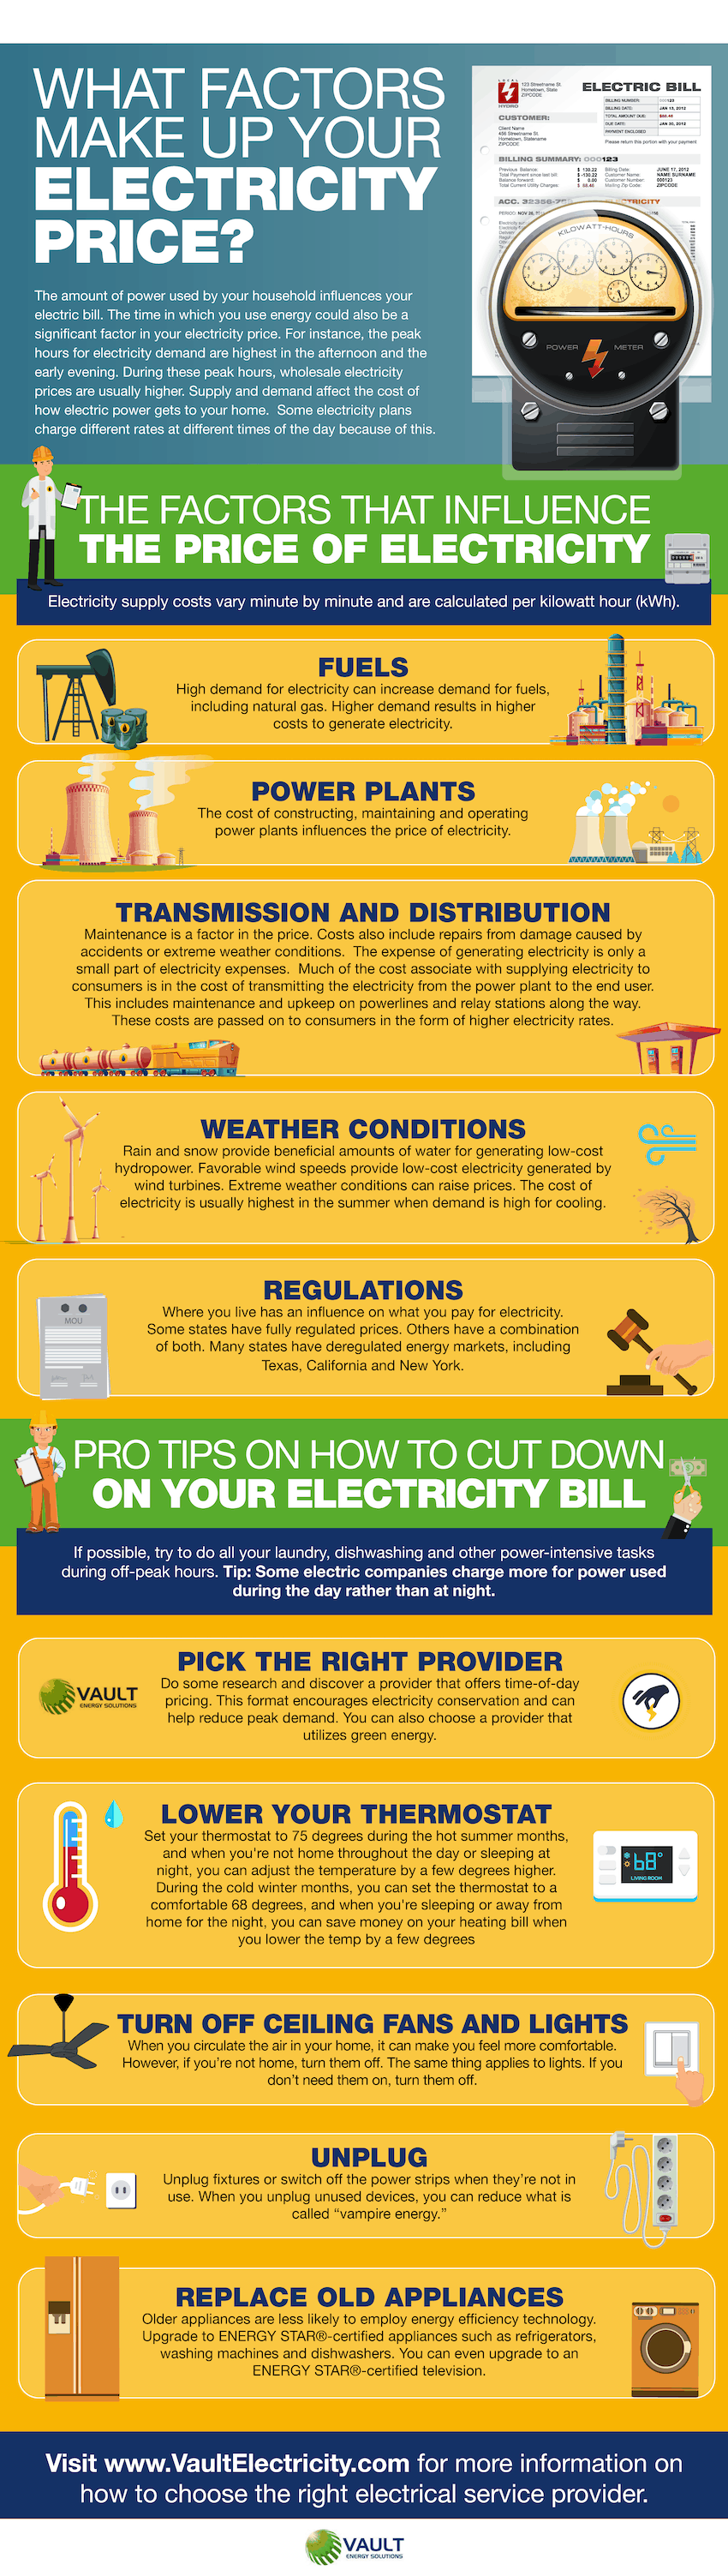 What Factors Make up Your Electricity Price